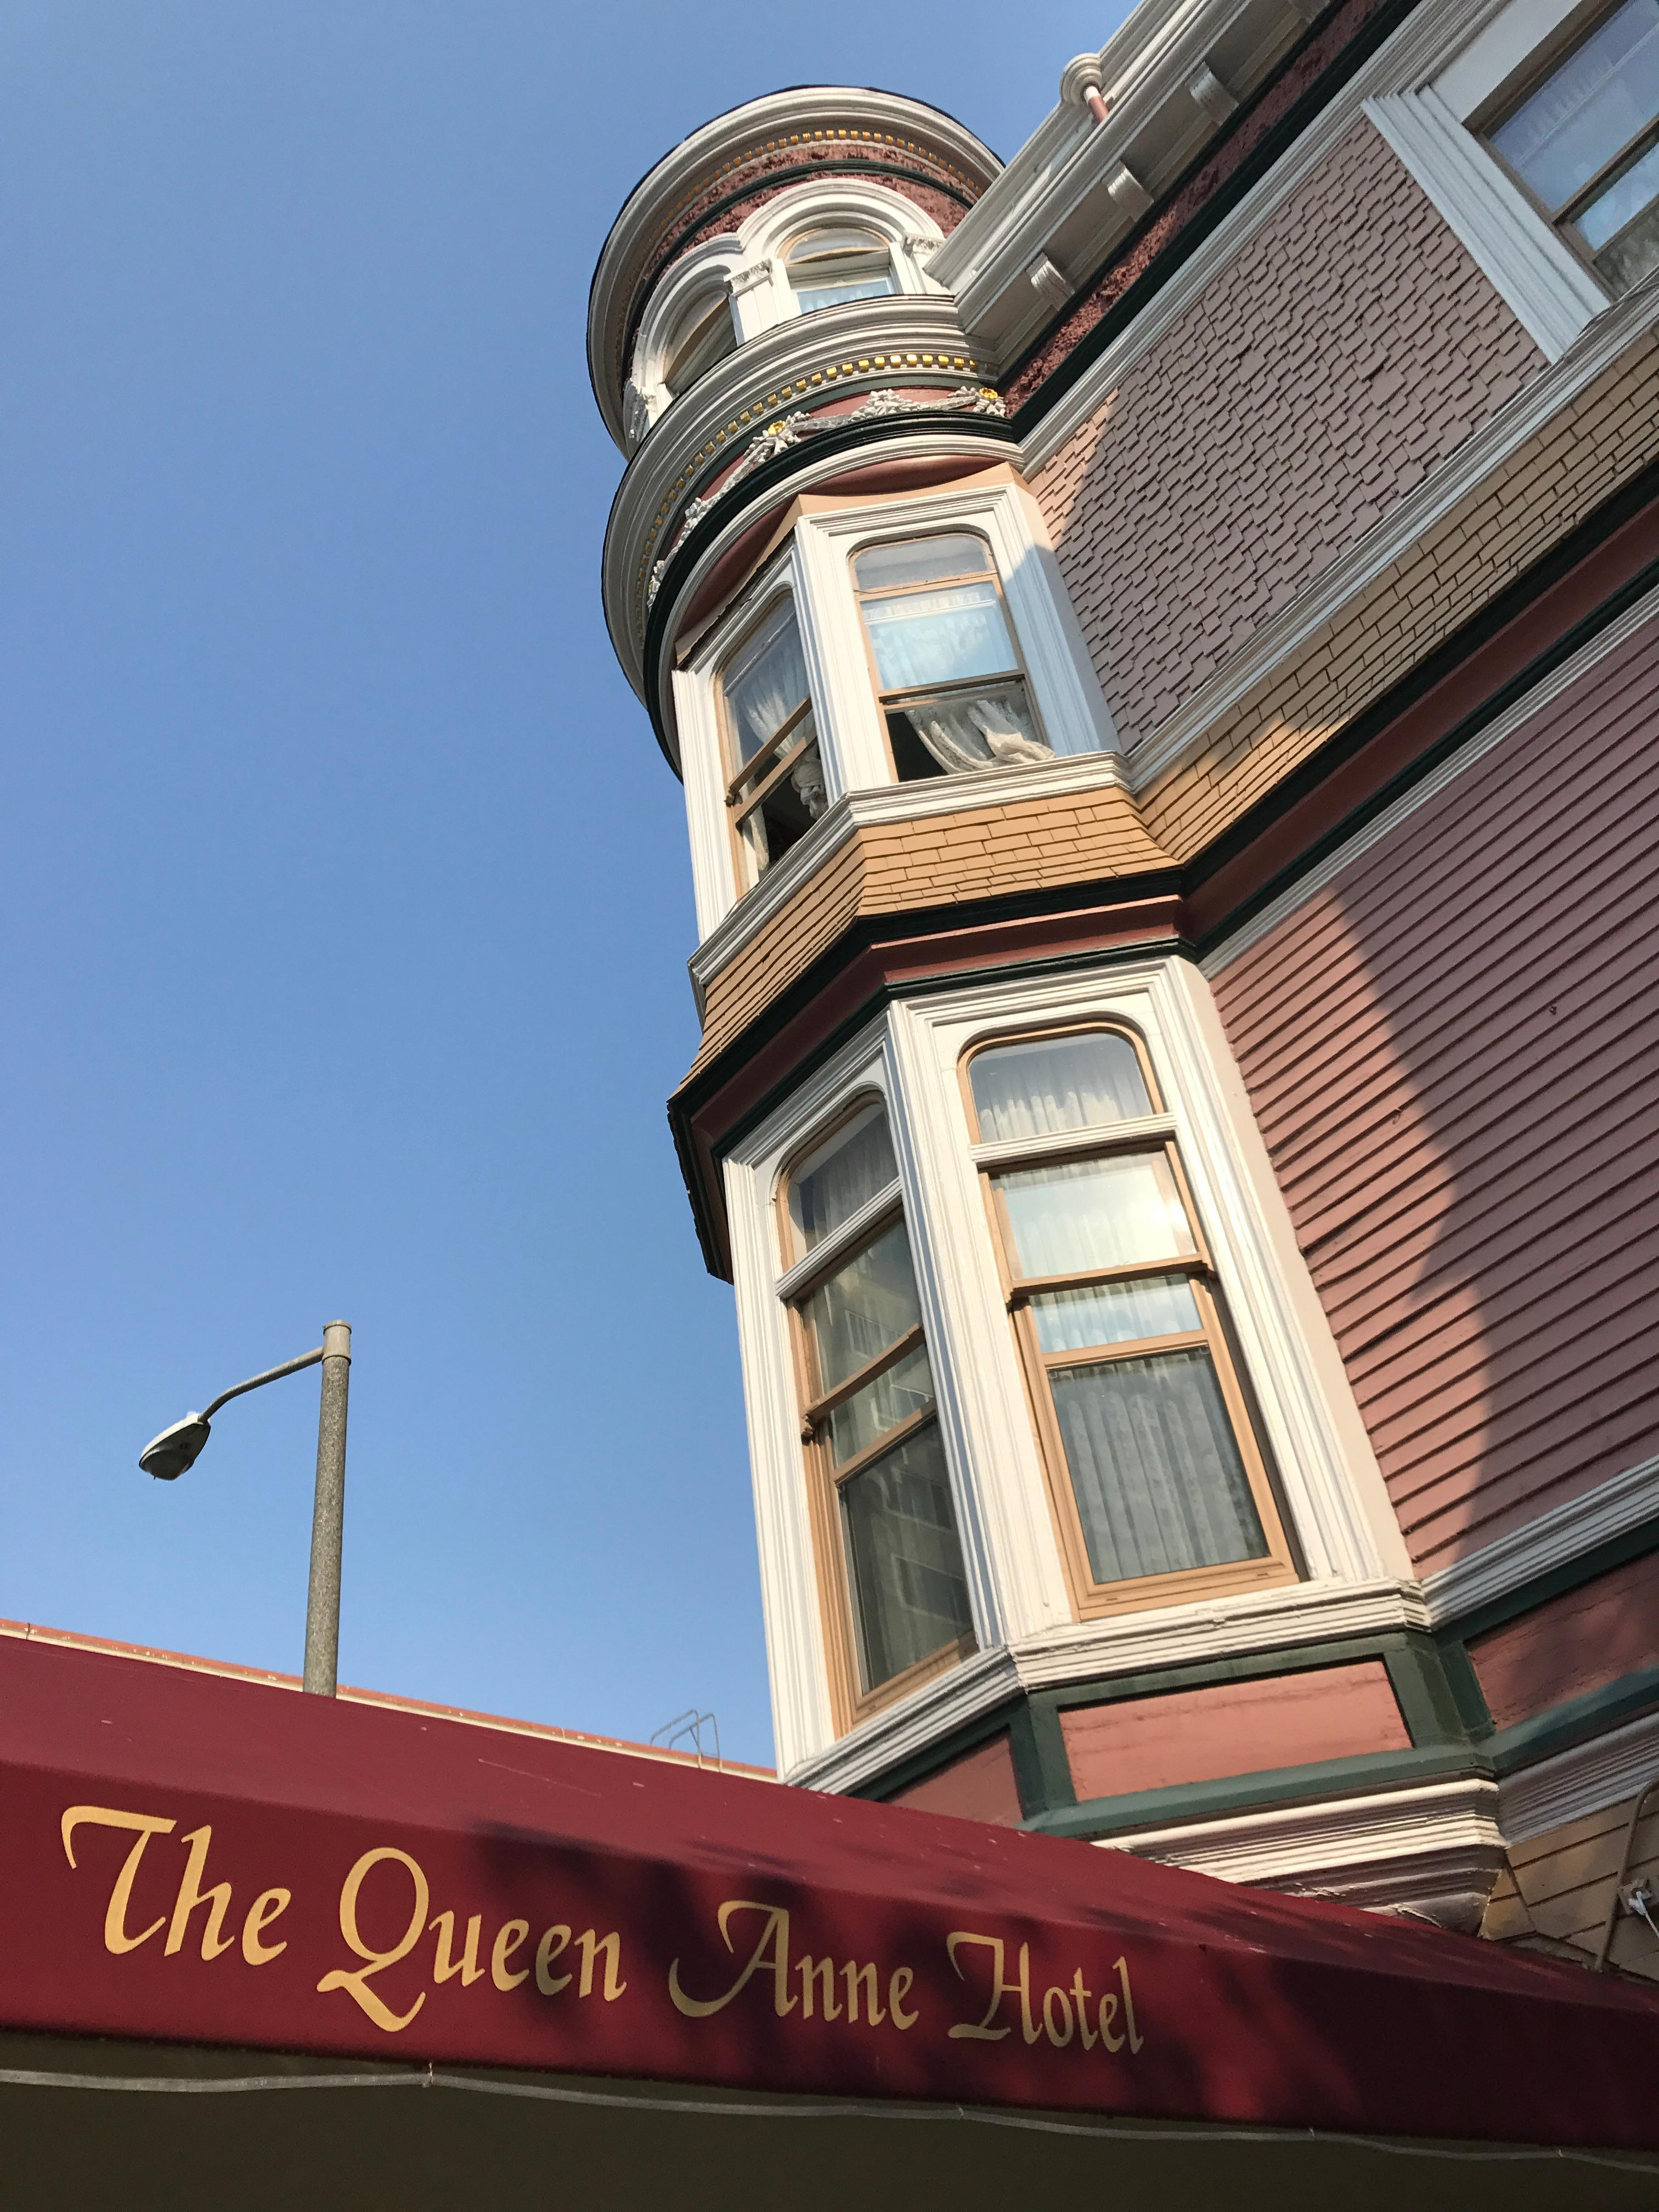 Queen Anne Hotel 2017 Room Prices Deals  Reviews  Expedia